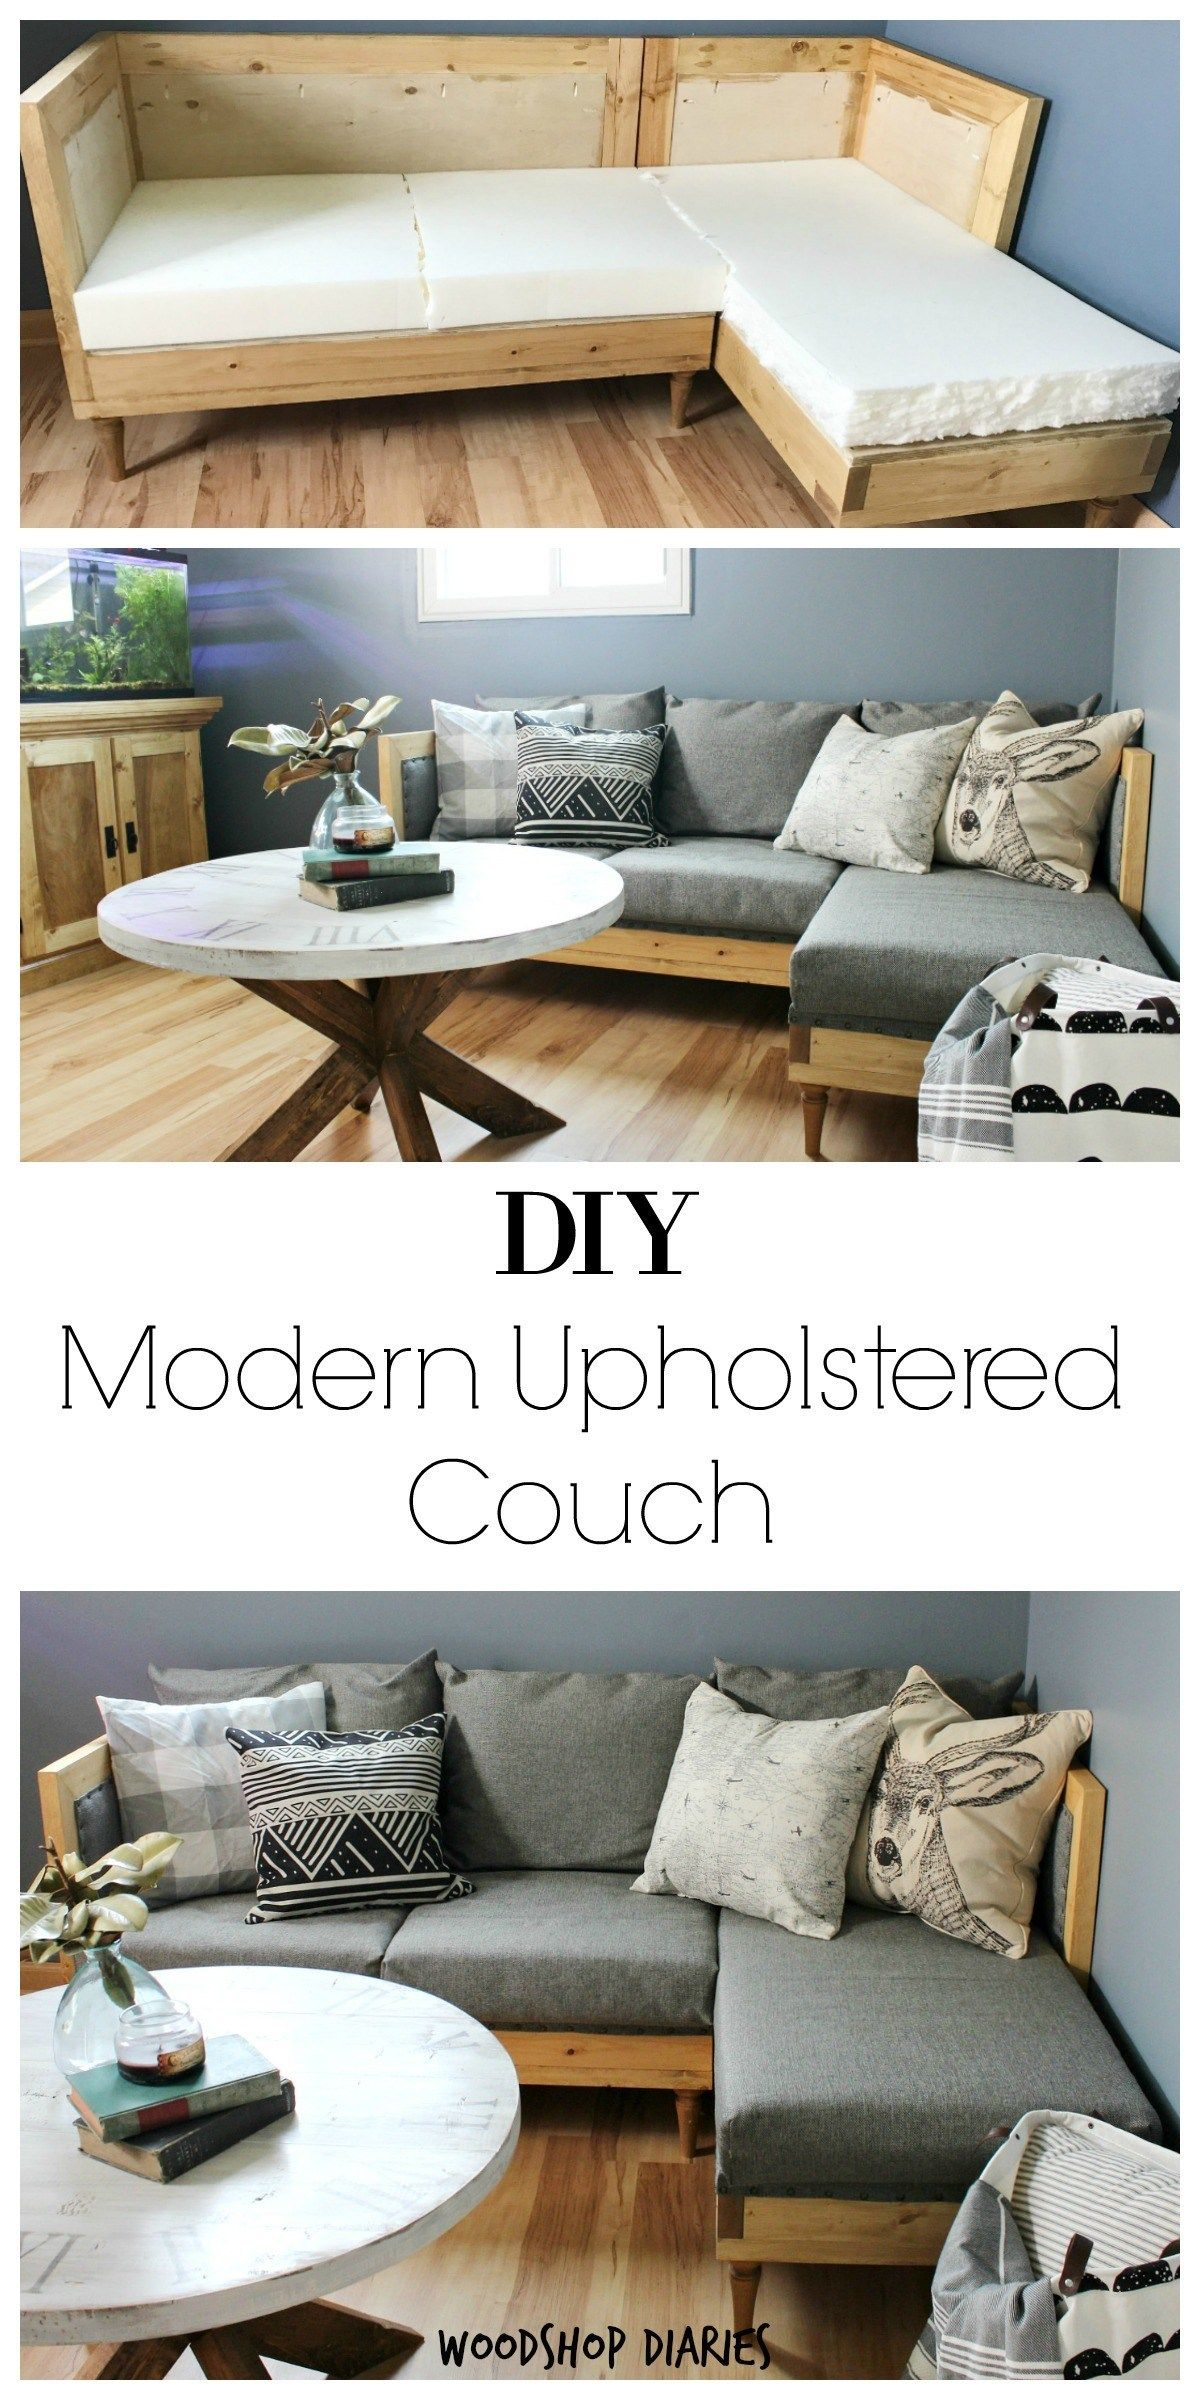 Diy Couch How To Build And Upholster Your Own Sofa Upholstered Couch Easy Home Decor Diy Couch